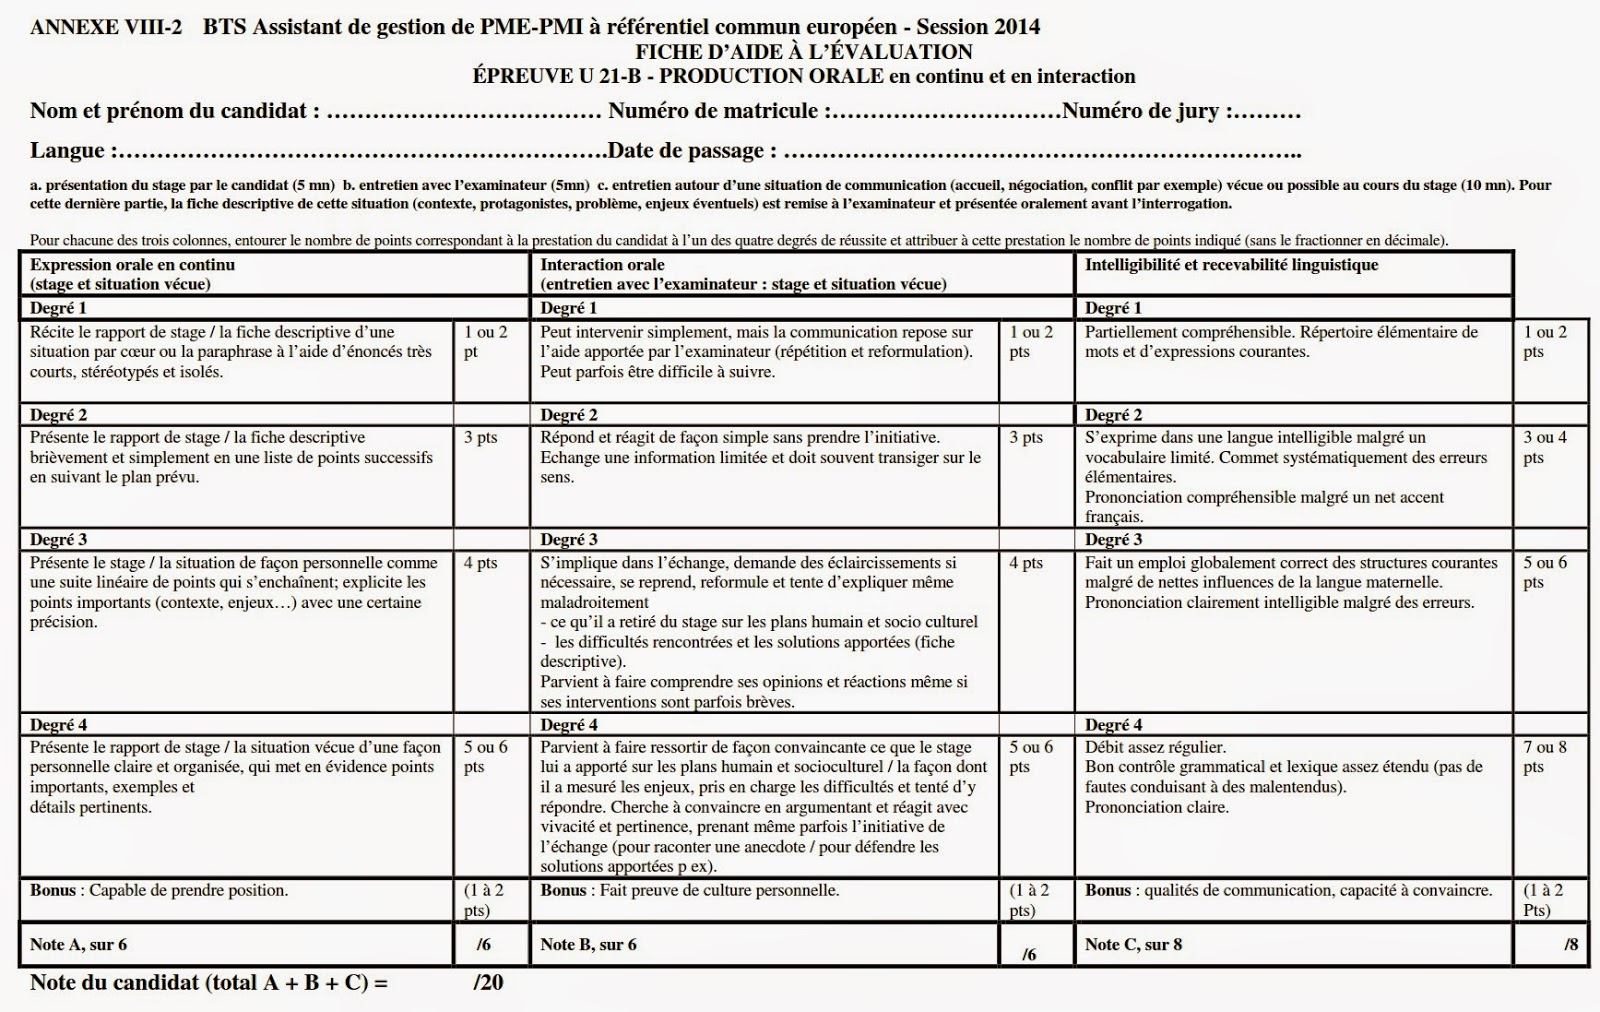 Grille valuation expression orale ag pme pmi lva - Grille evaluation expression ecrite anglais ...